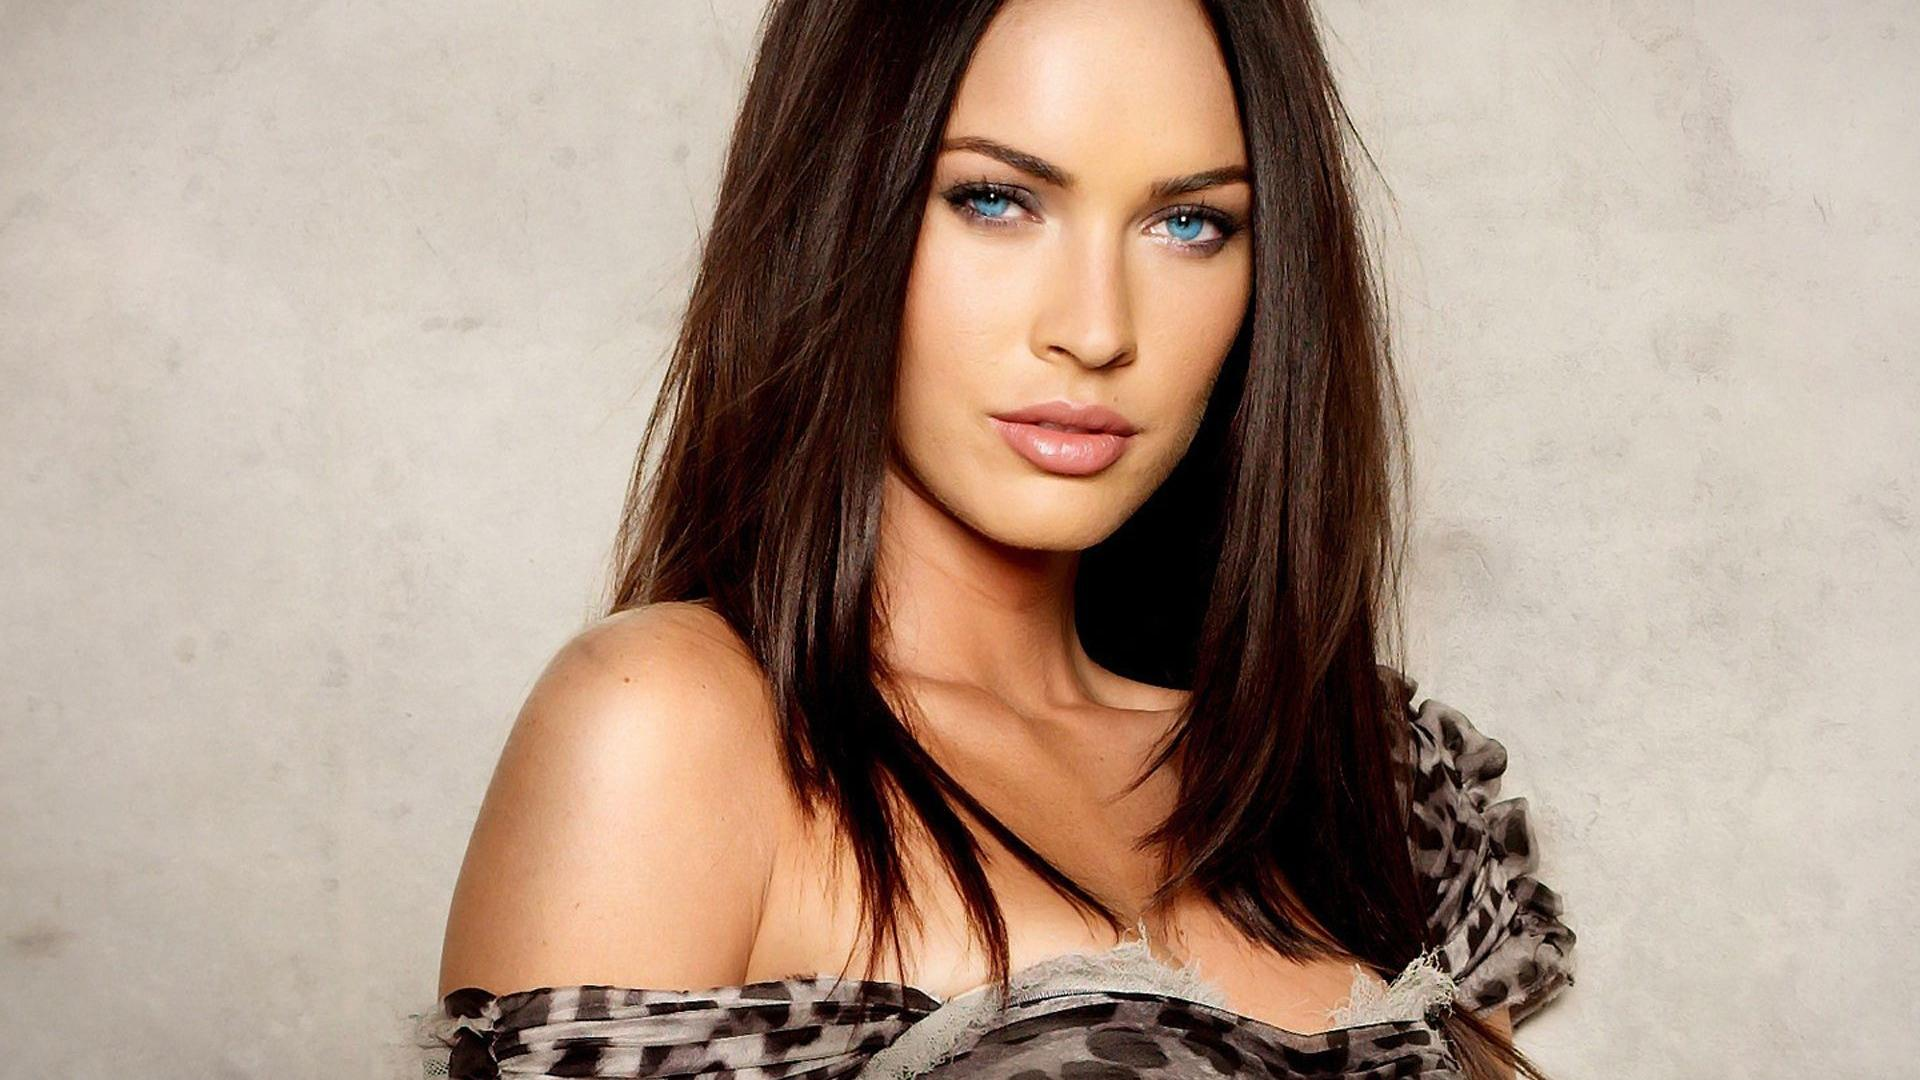 Megan Fox Wallpaper HD Widescreen ImageBankbiz 1920x1080